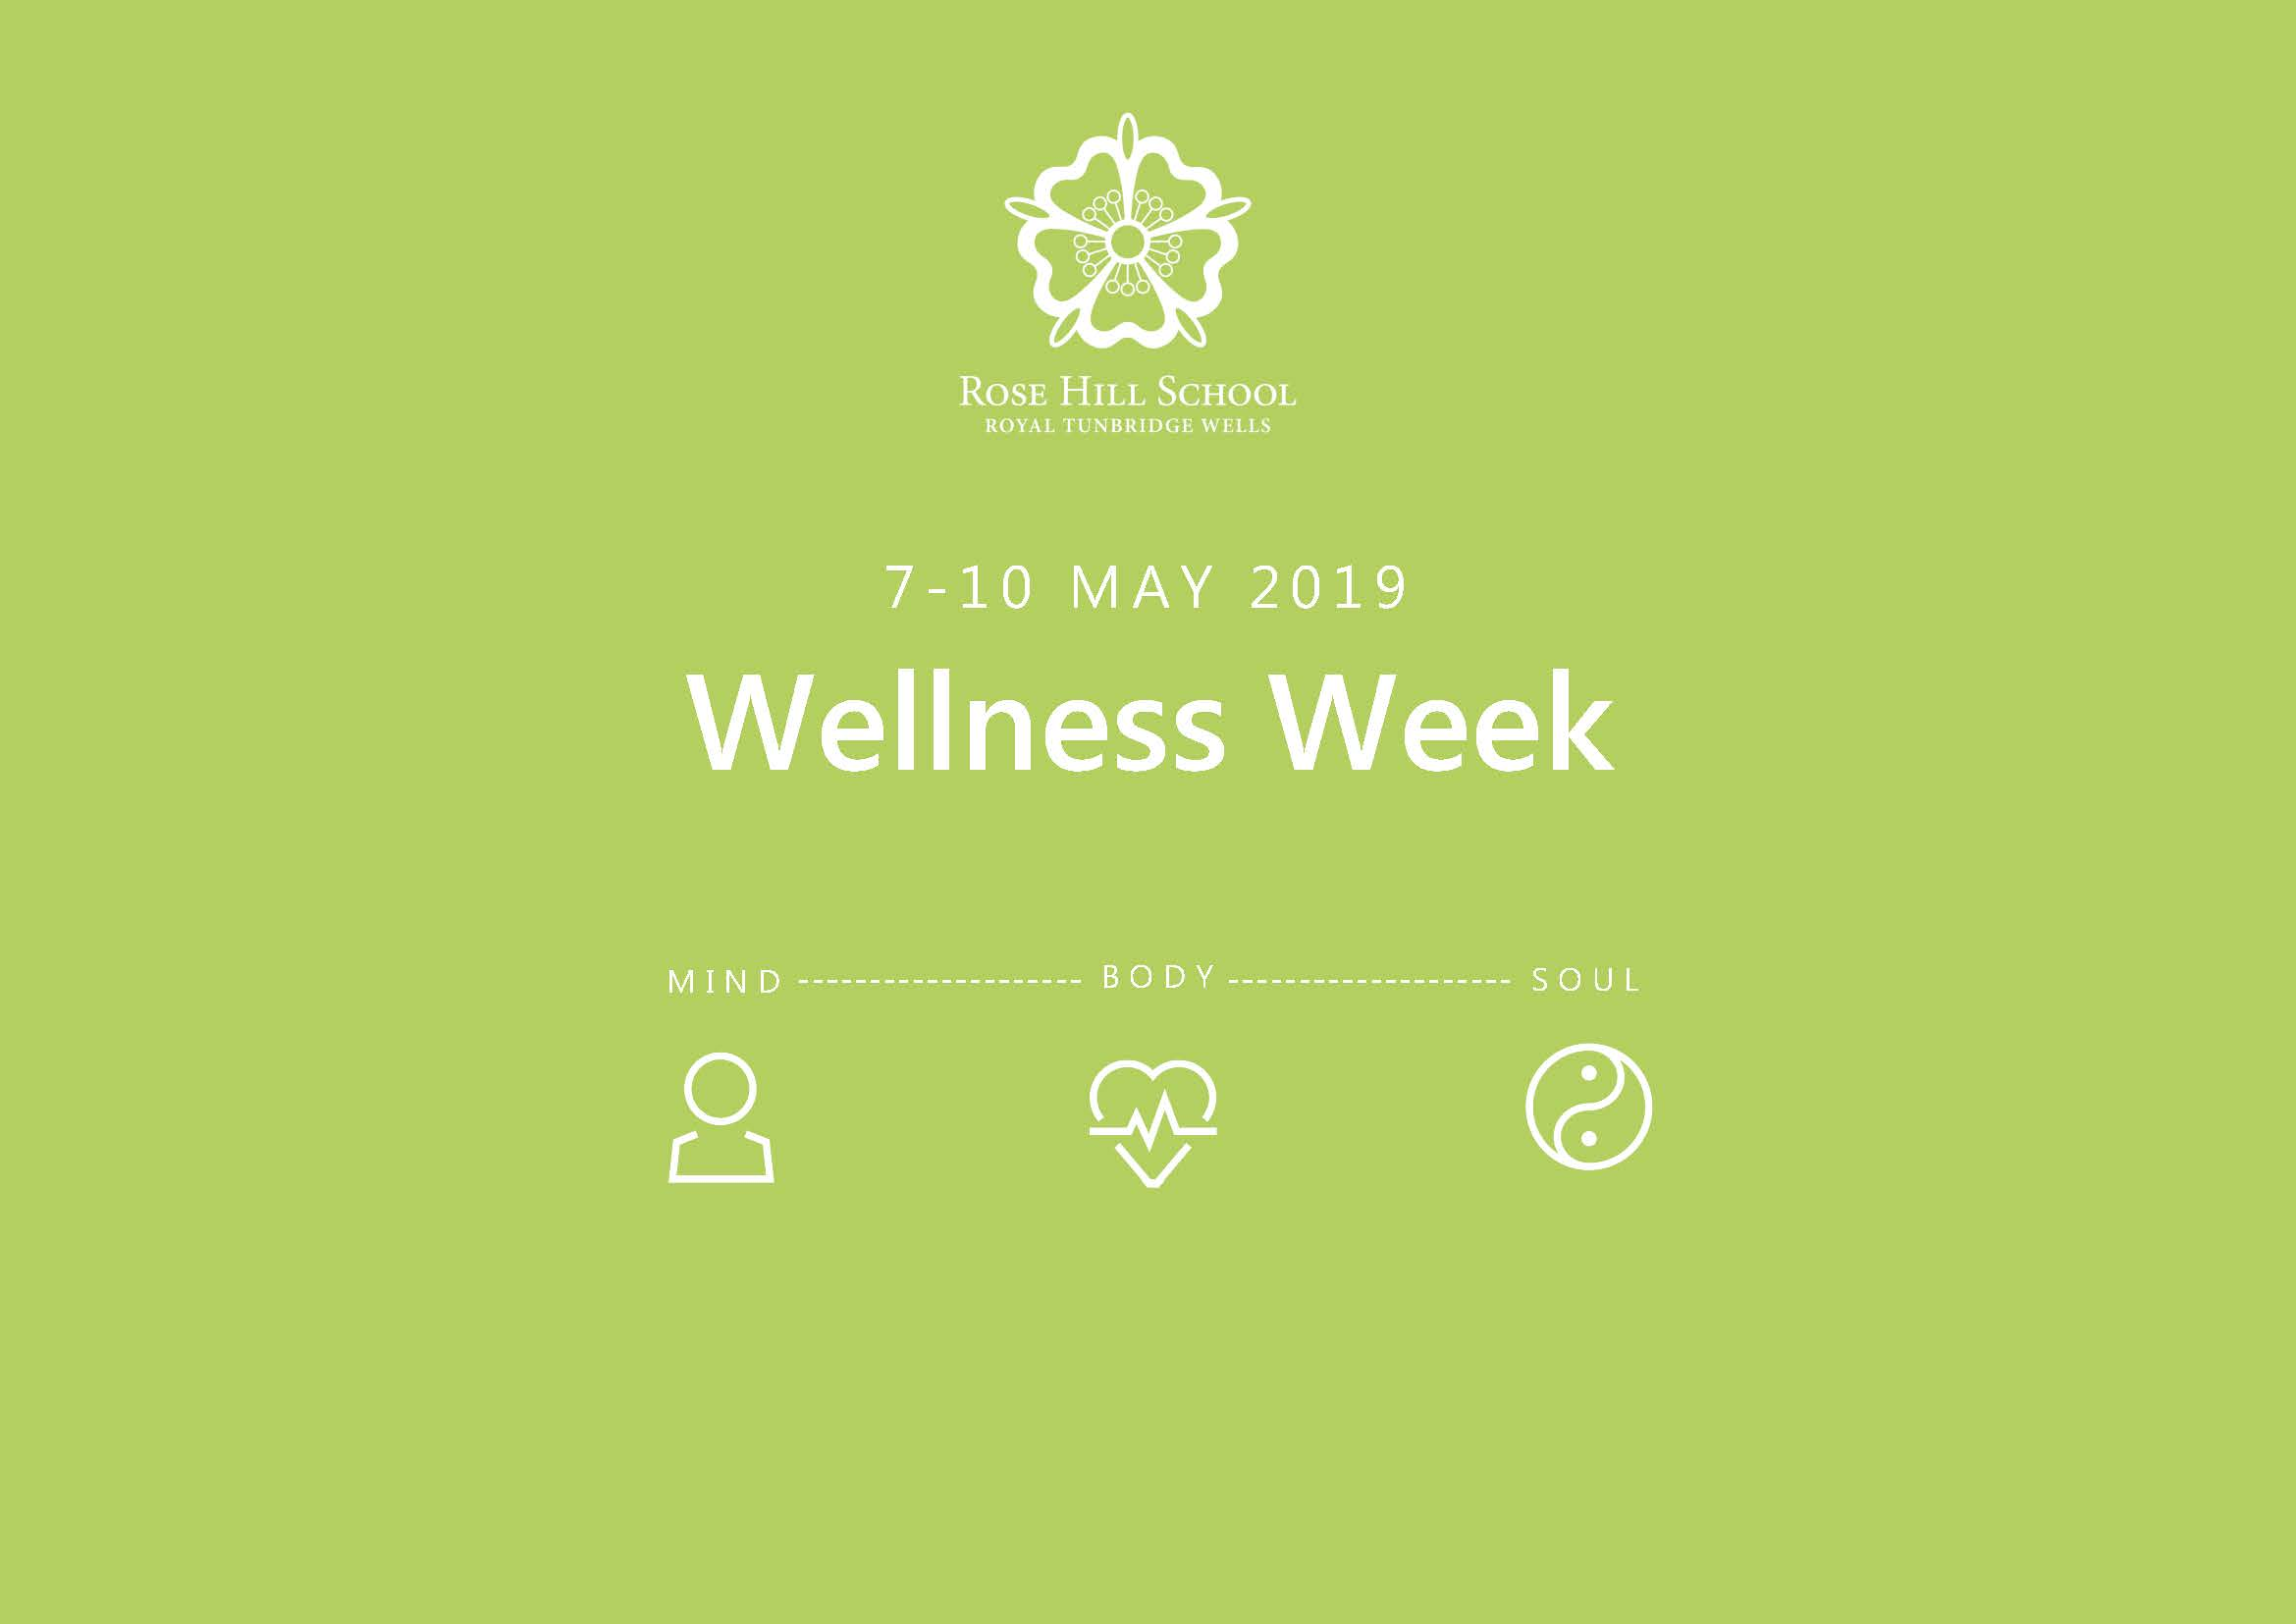 WELLNESS HQ at ROSE HILL SCHOOL - We were delighted to have led Rose Hill School's Wellness Week where our members ran a series of workshops to parents, staff and pupils